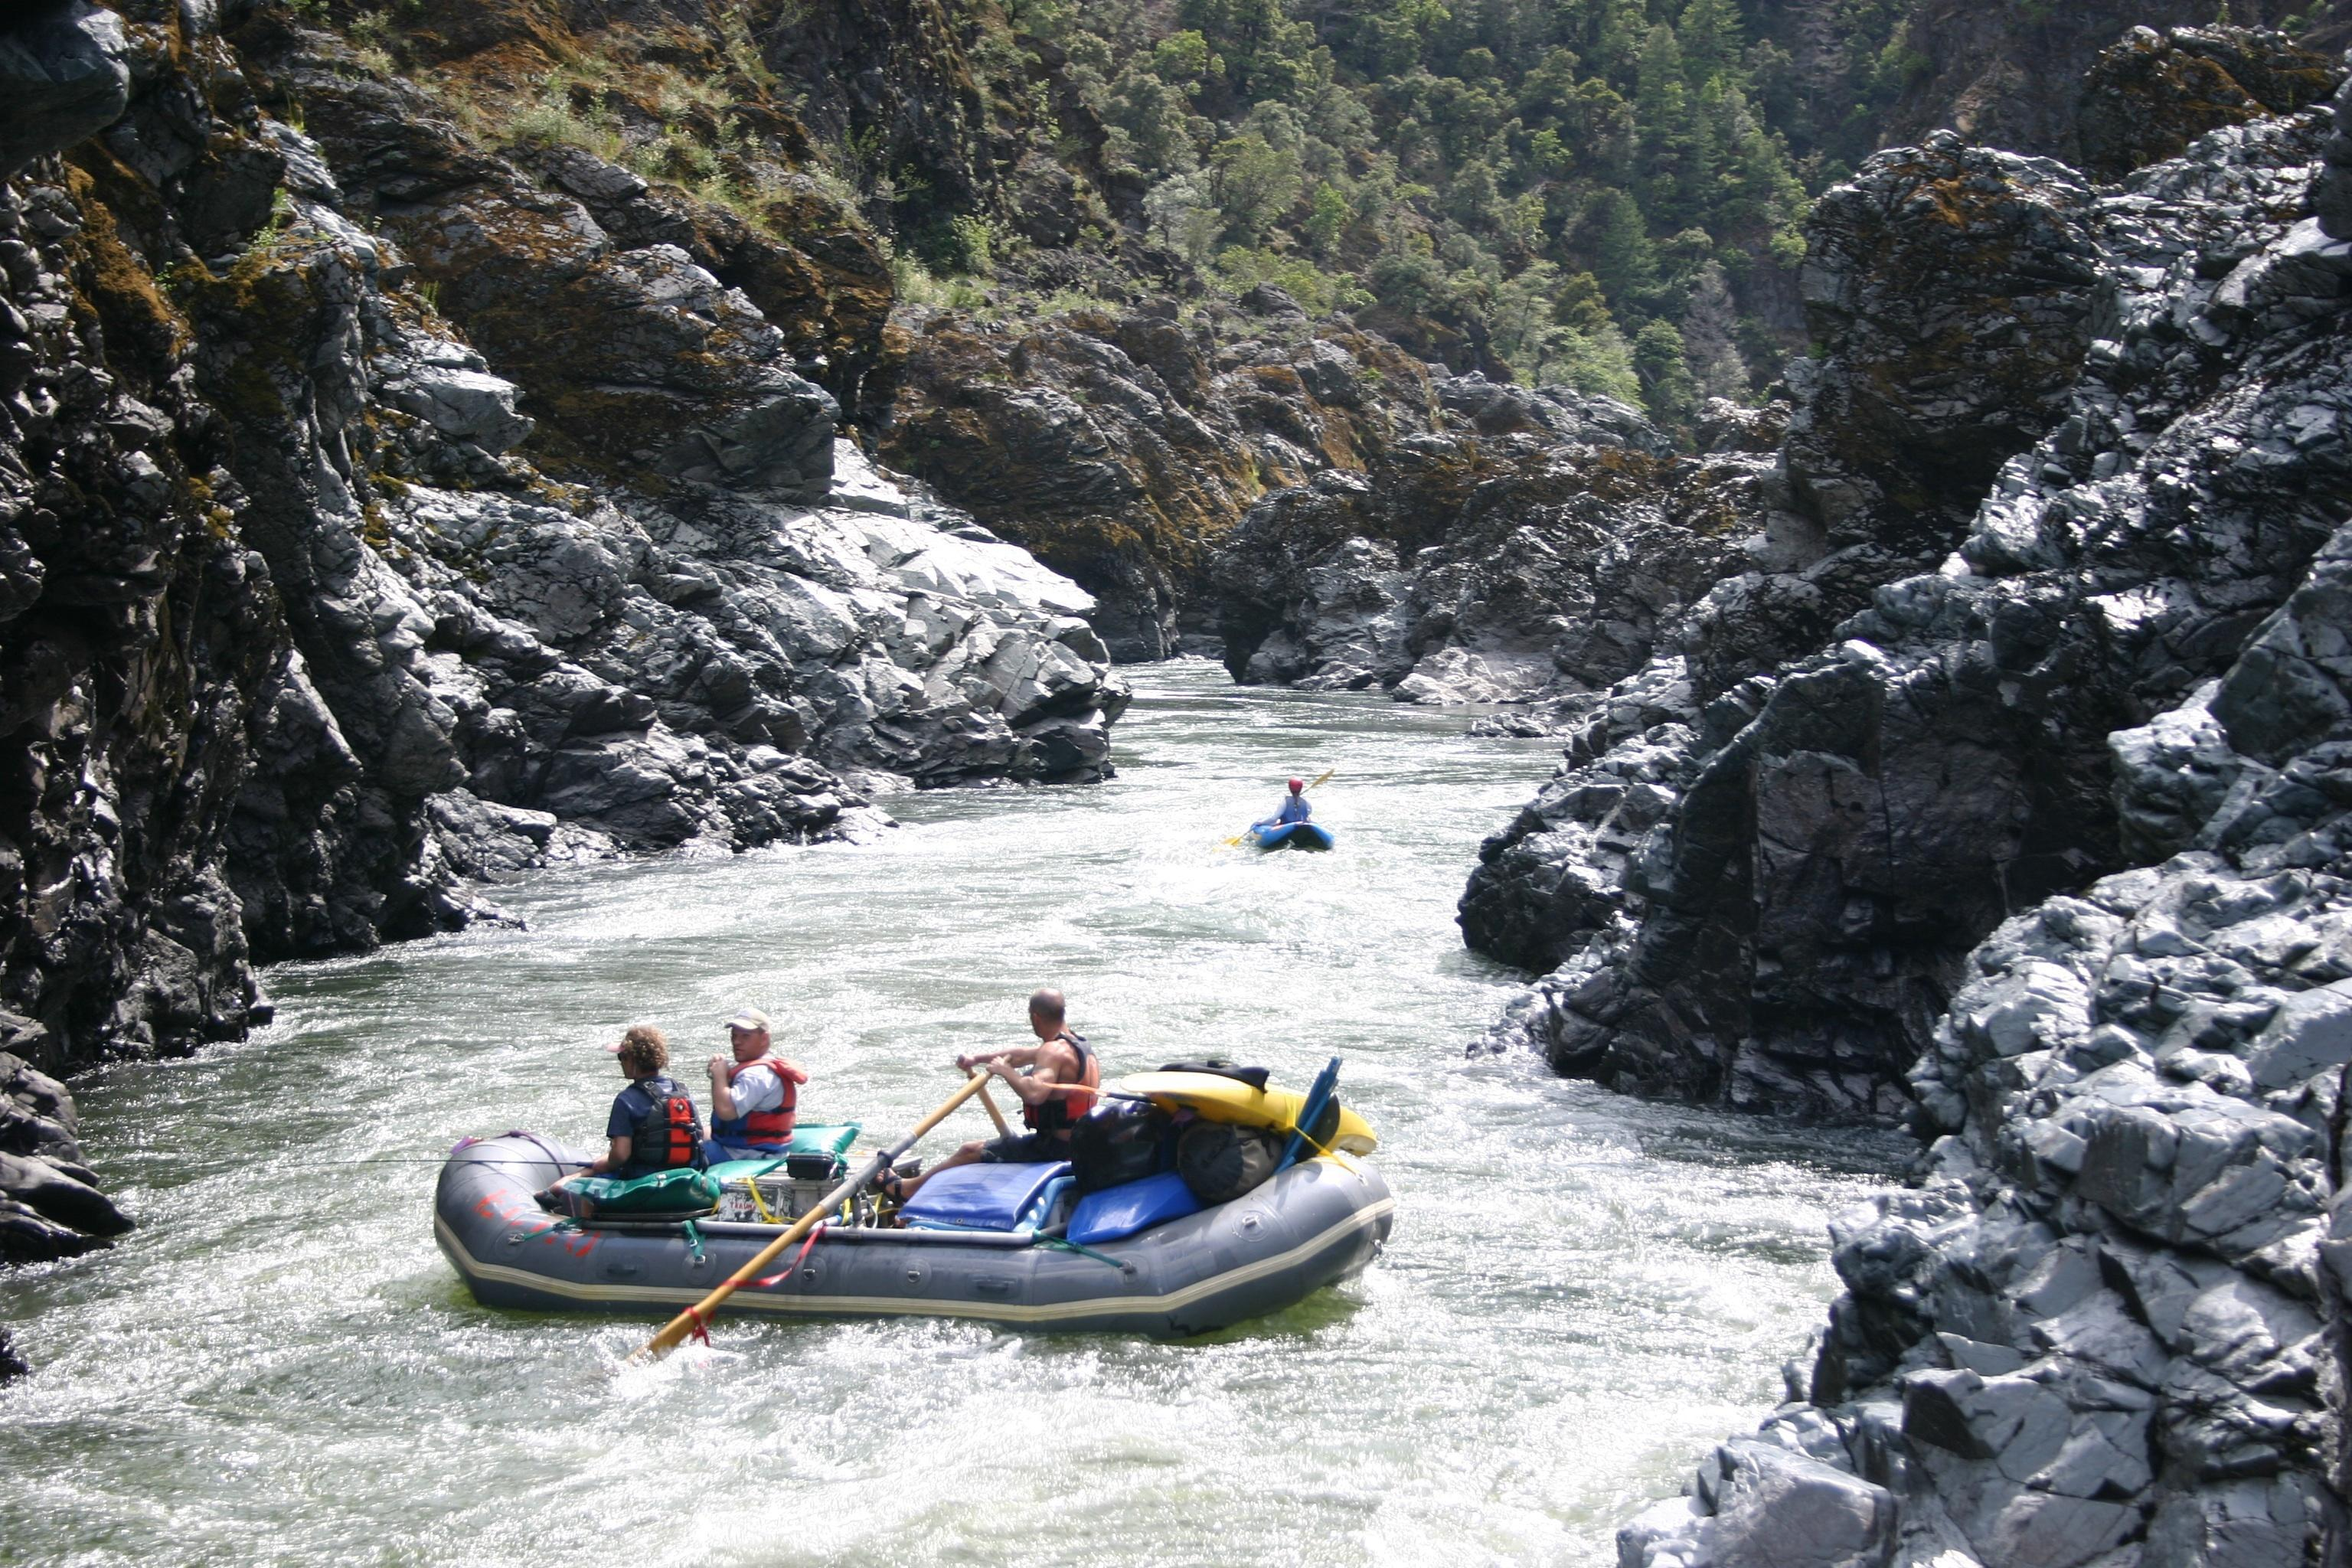 Rafters enter Mule Creek Canyon in the Rogue River. Photo courtesy of Zach Collier / Northwest Rafting Company